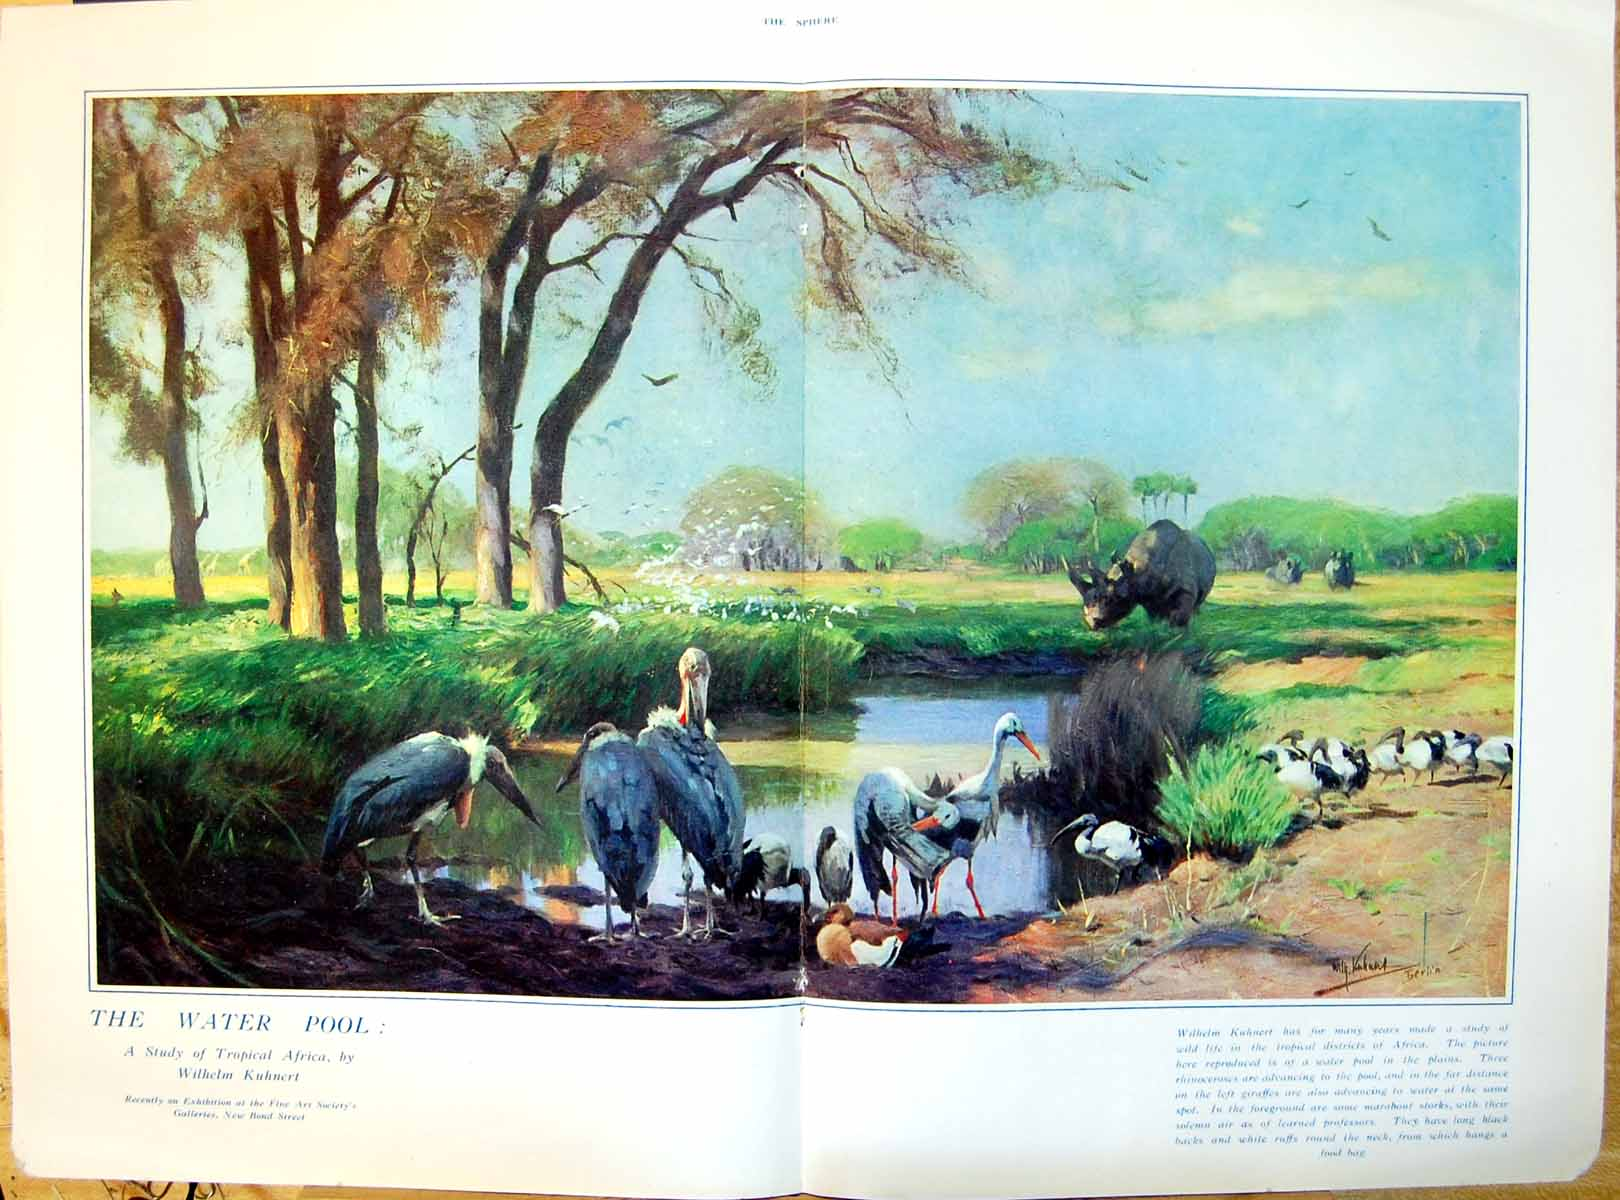 [Print Water Pool Tropical Africa W Kuhnert Storks Rhinoceroses 438J719 Old Original]